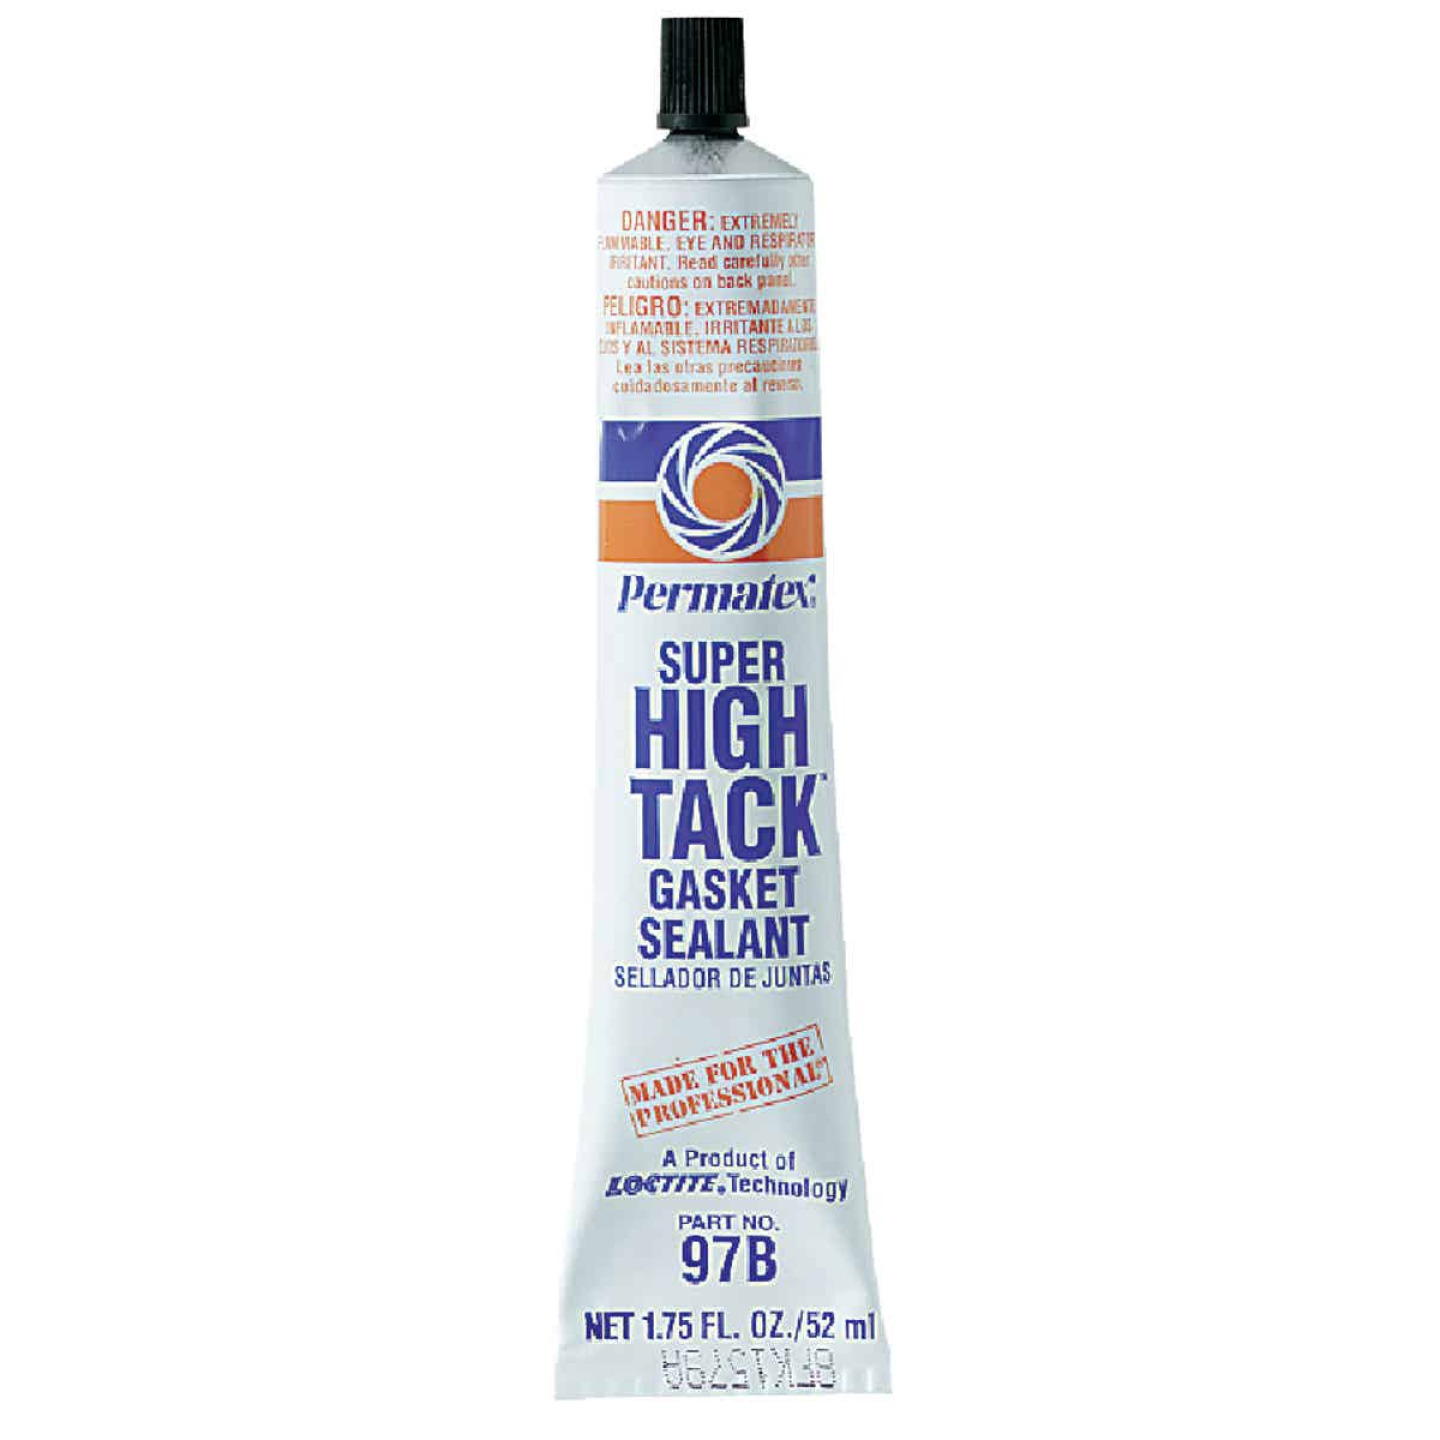 Permatex 2 Oz. High Tack Gasket Sealant Image 1